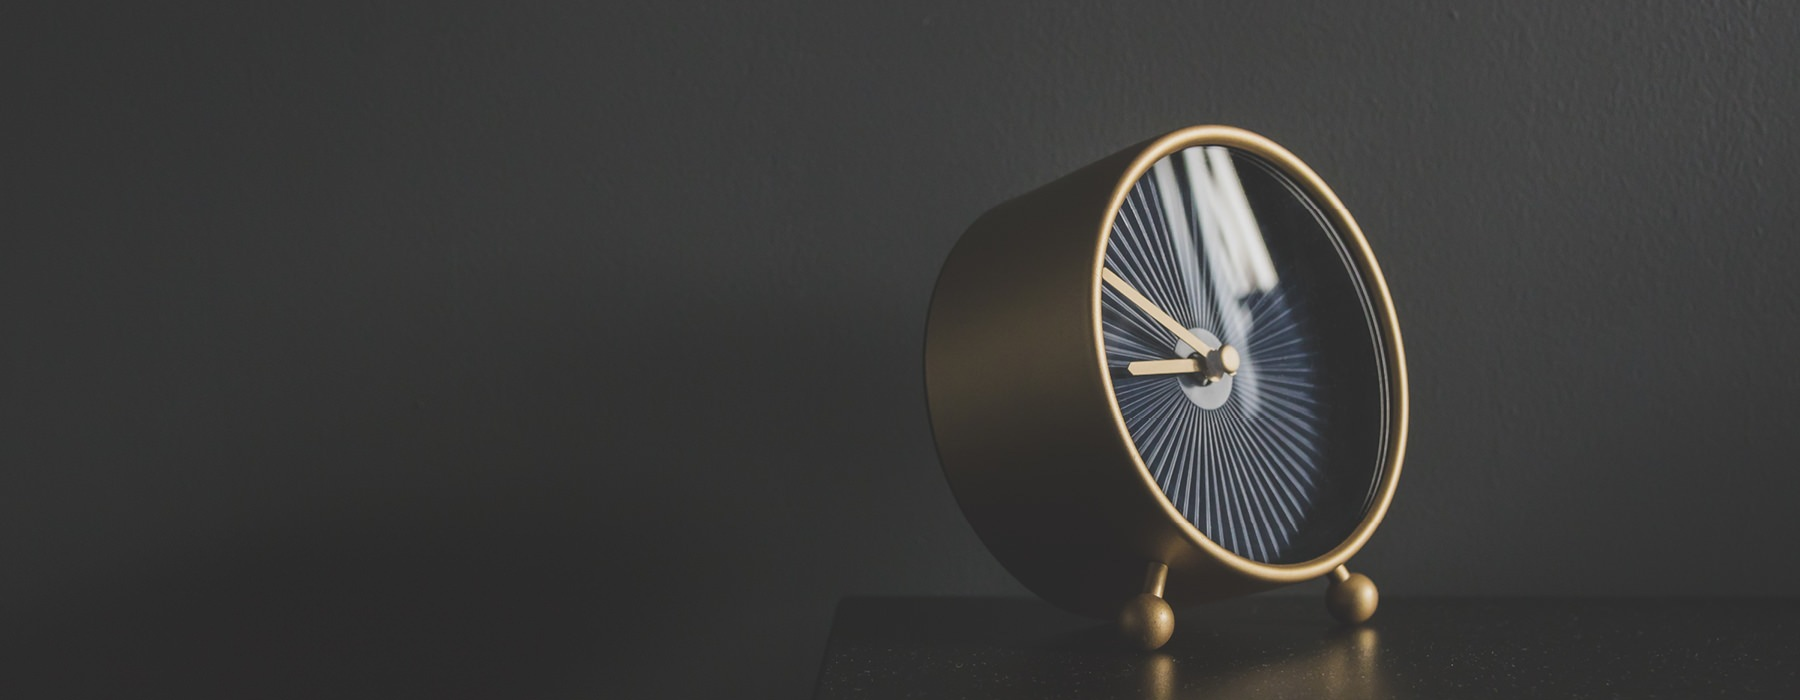 stock photo of round, gold and black clock sitting on a black table against a black wall